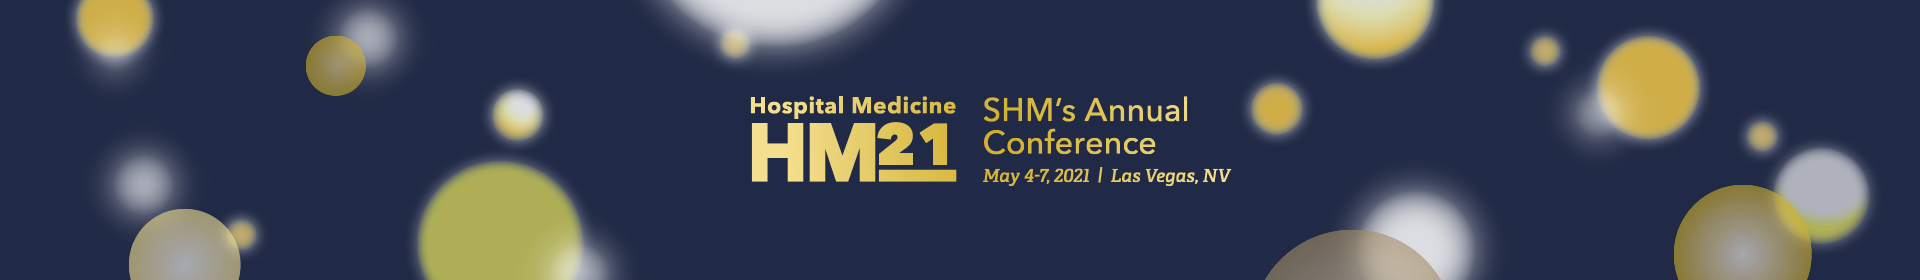 Hospital Medicine 2021 - Abstracts Event Banner